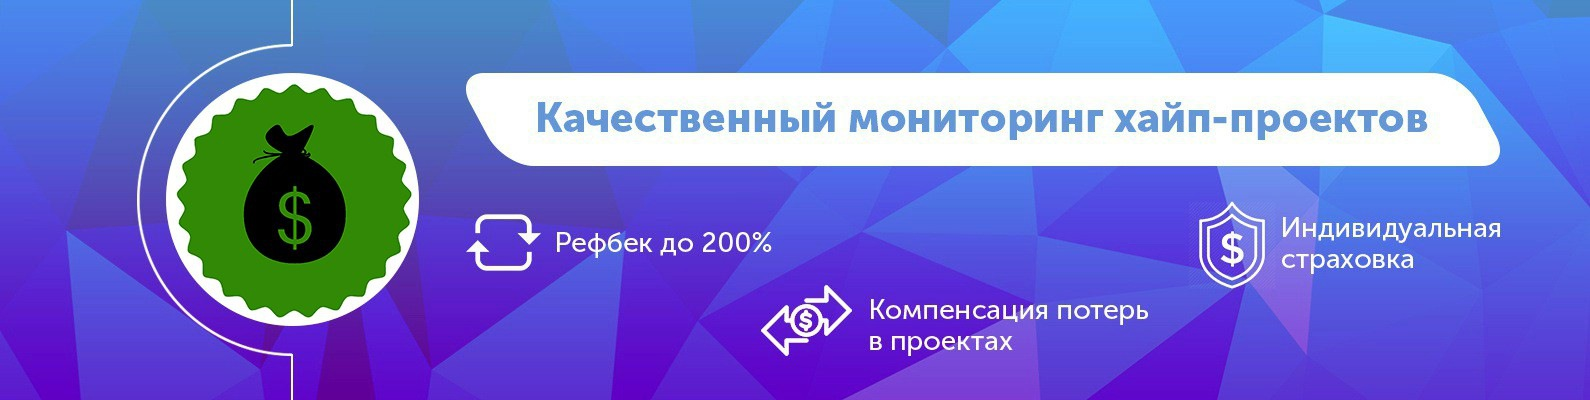 Мониторинг хайп сайтов outlook